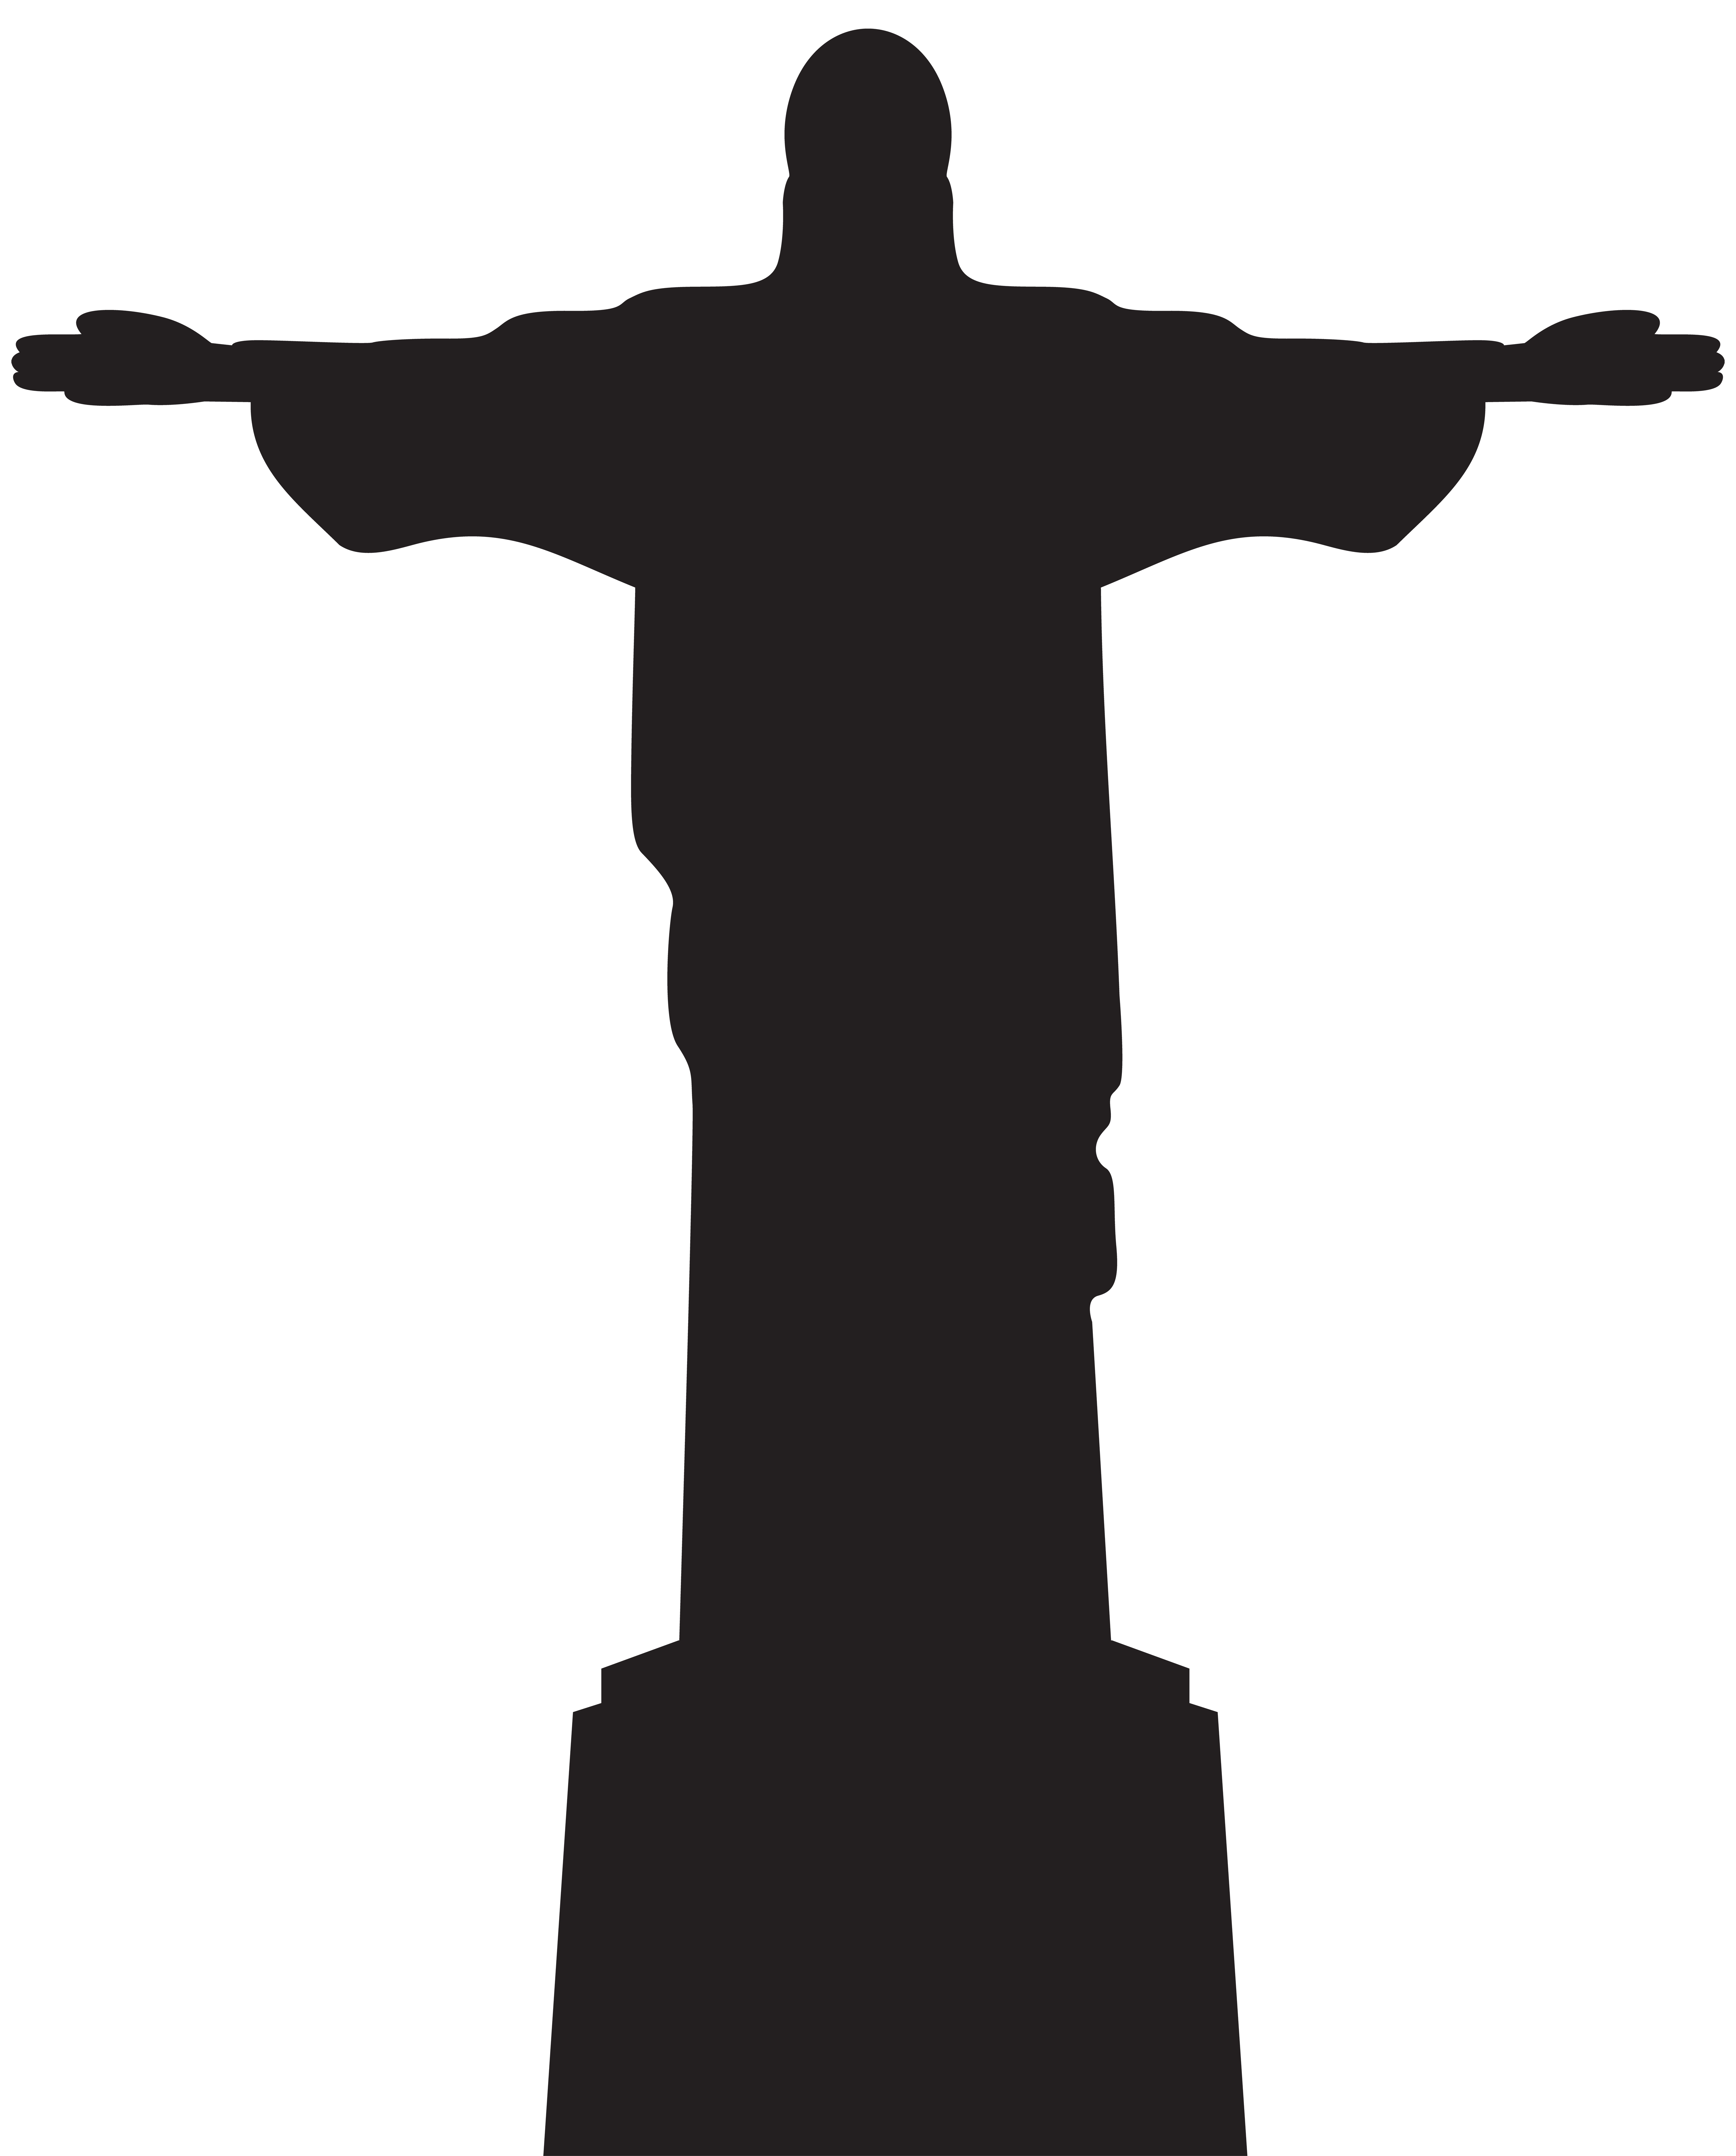 clip free download Jesus cross clipart. Christ silhouette at getdrawings